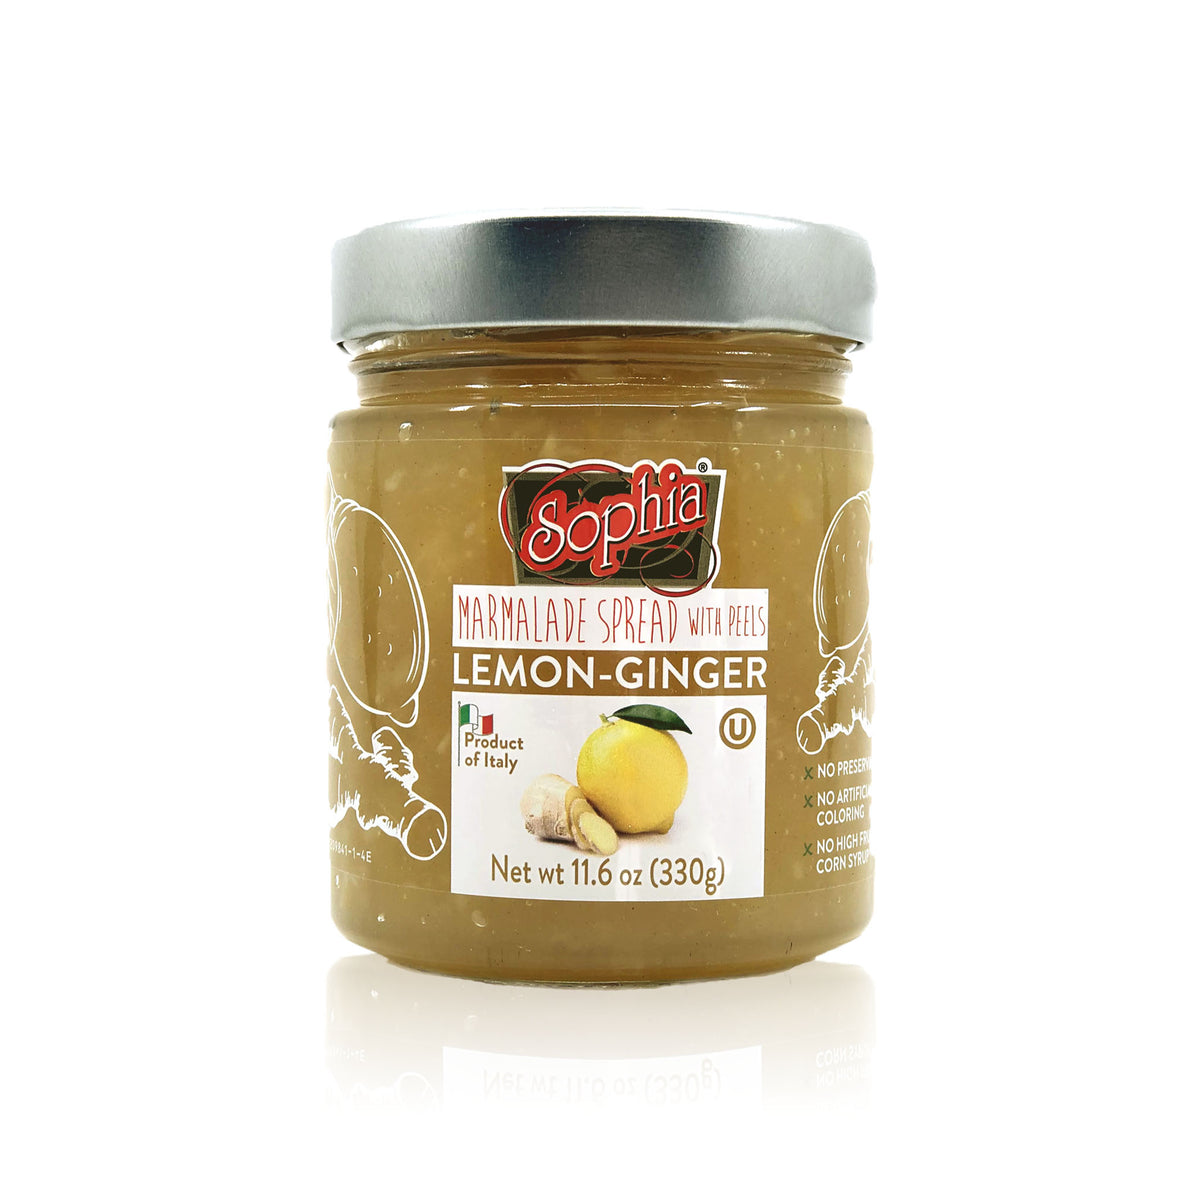 Sophia Fruit Spread - Lemon Ginger Preserves 11.6oz